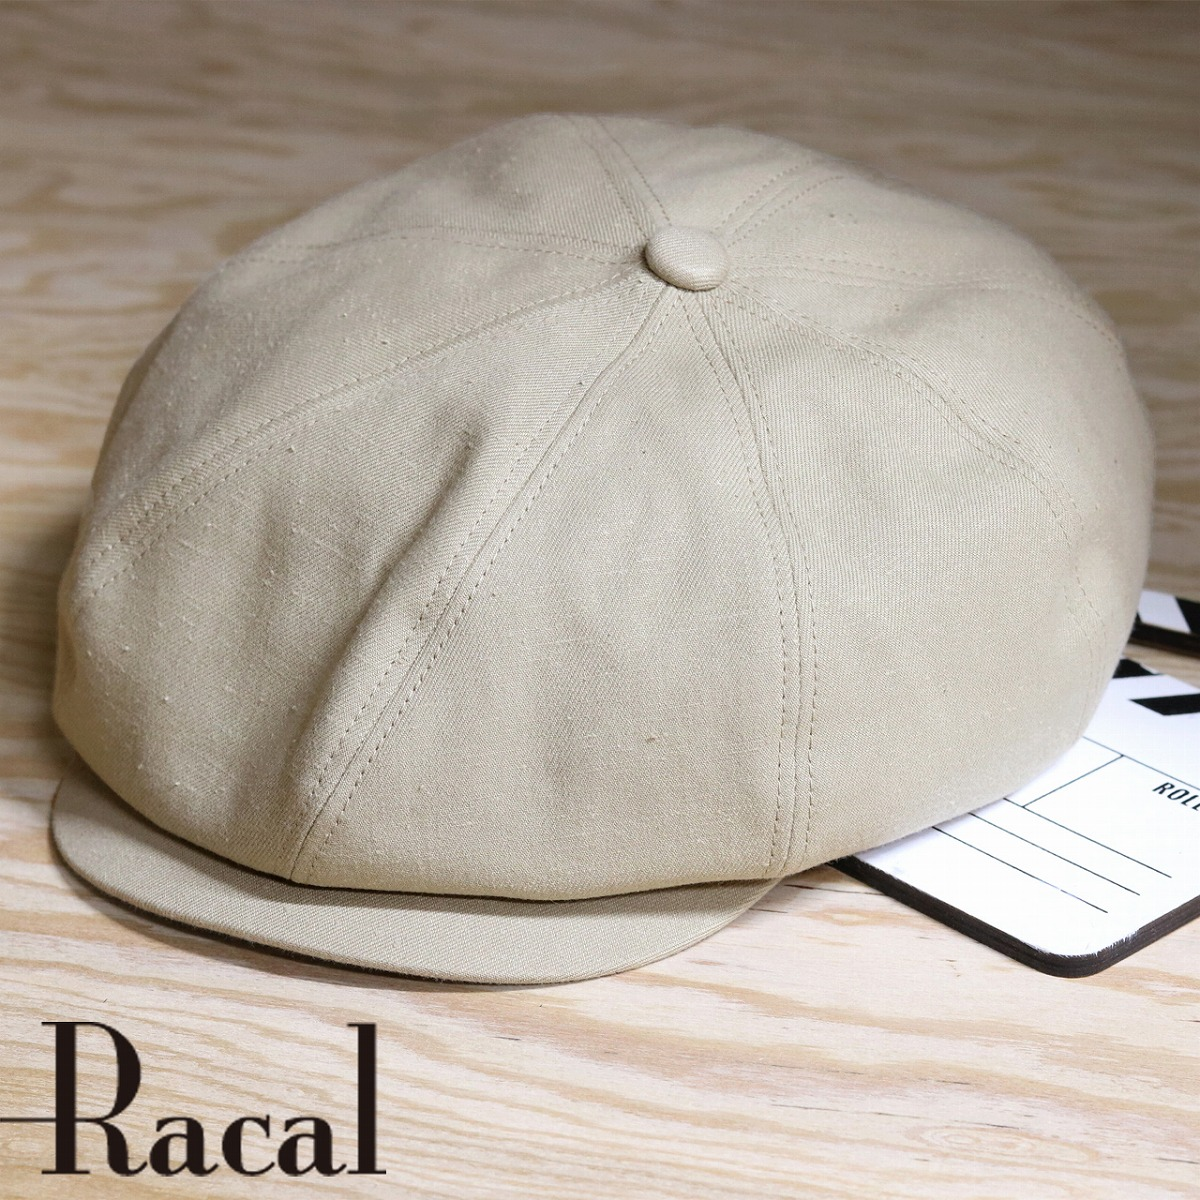 fd393fe7 It is a gift present on product made in racal casquette men cotton Cass CAP  brand natural hat plain fabric 8 panel Cass saliva awning Shin pull  asymmetric ...